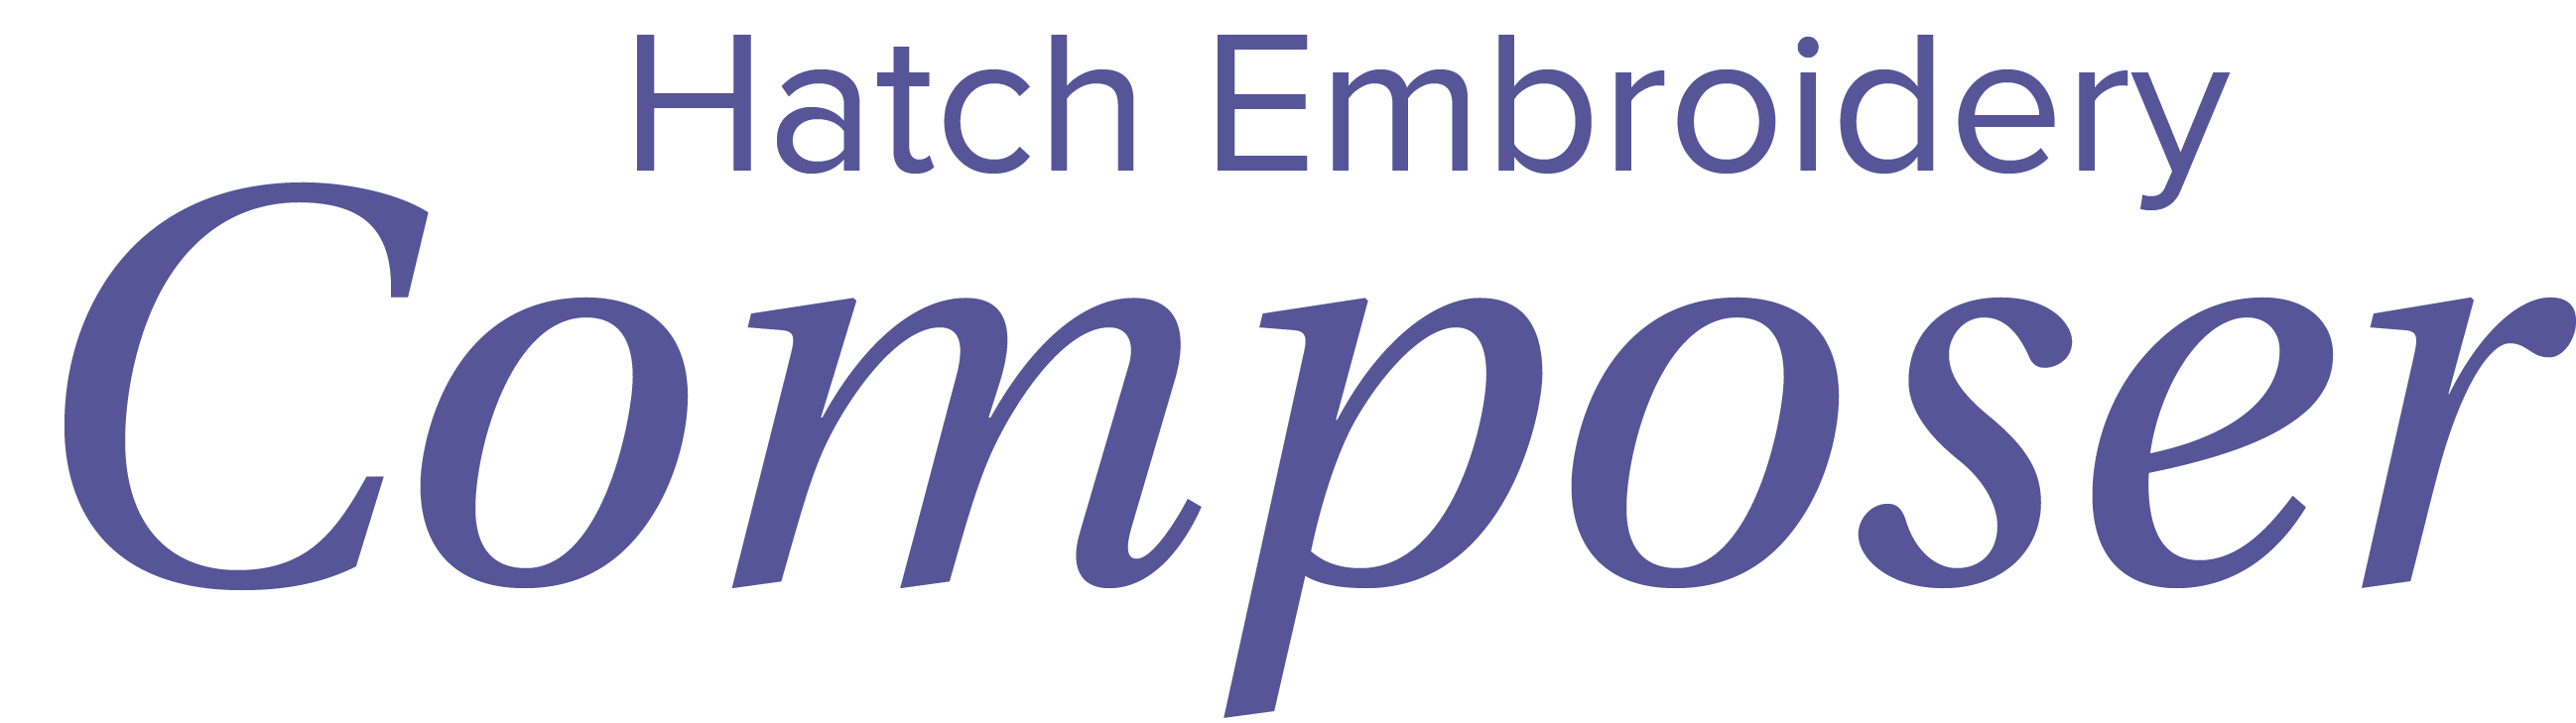 hatch embroidery composer